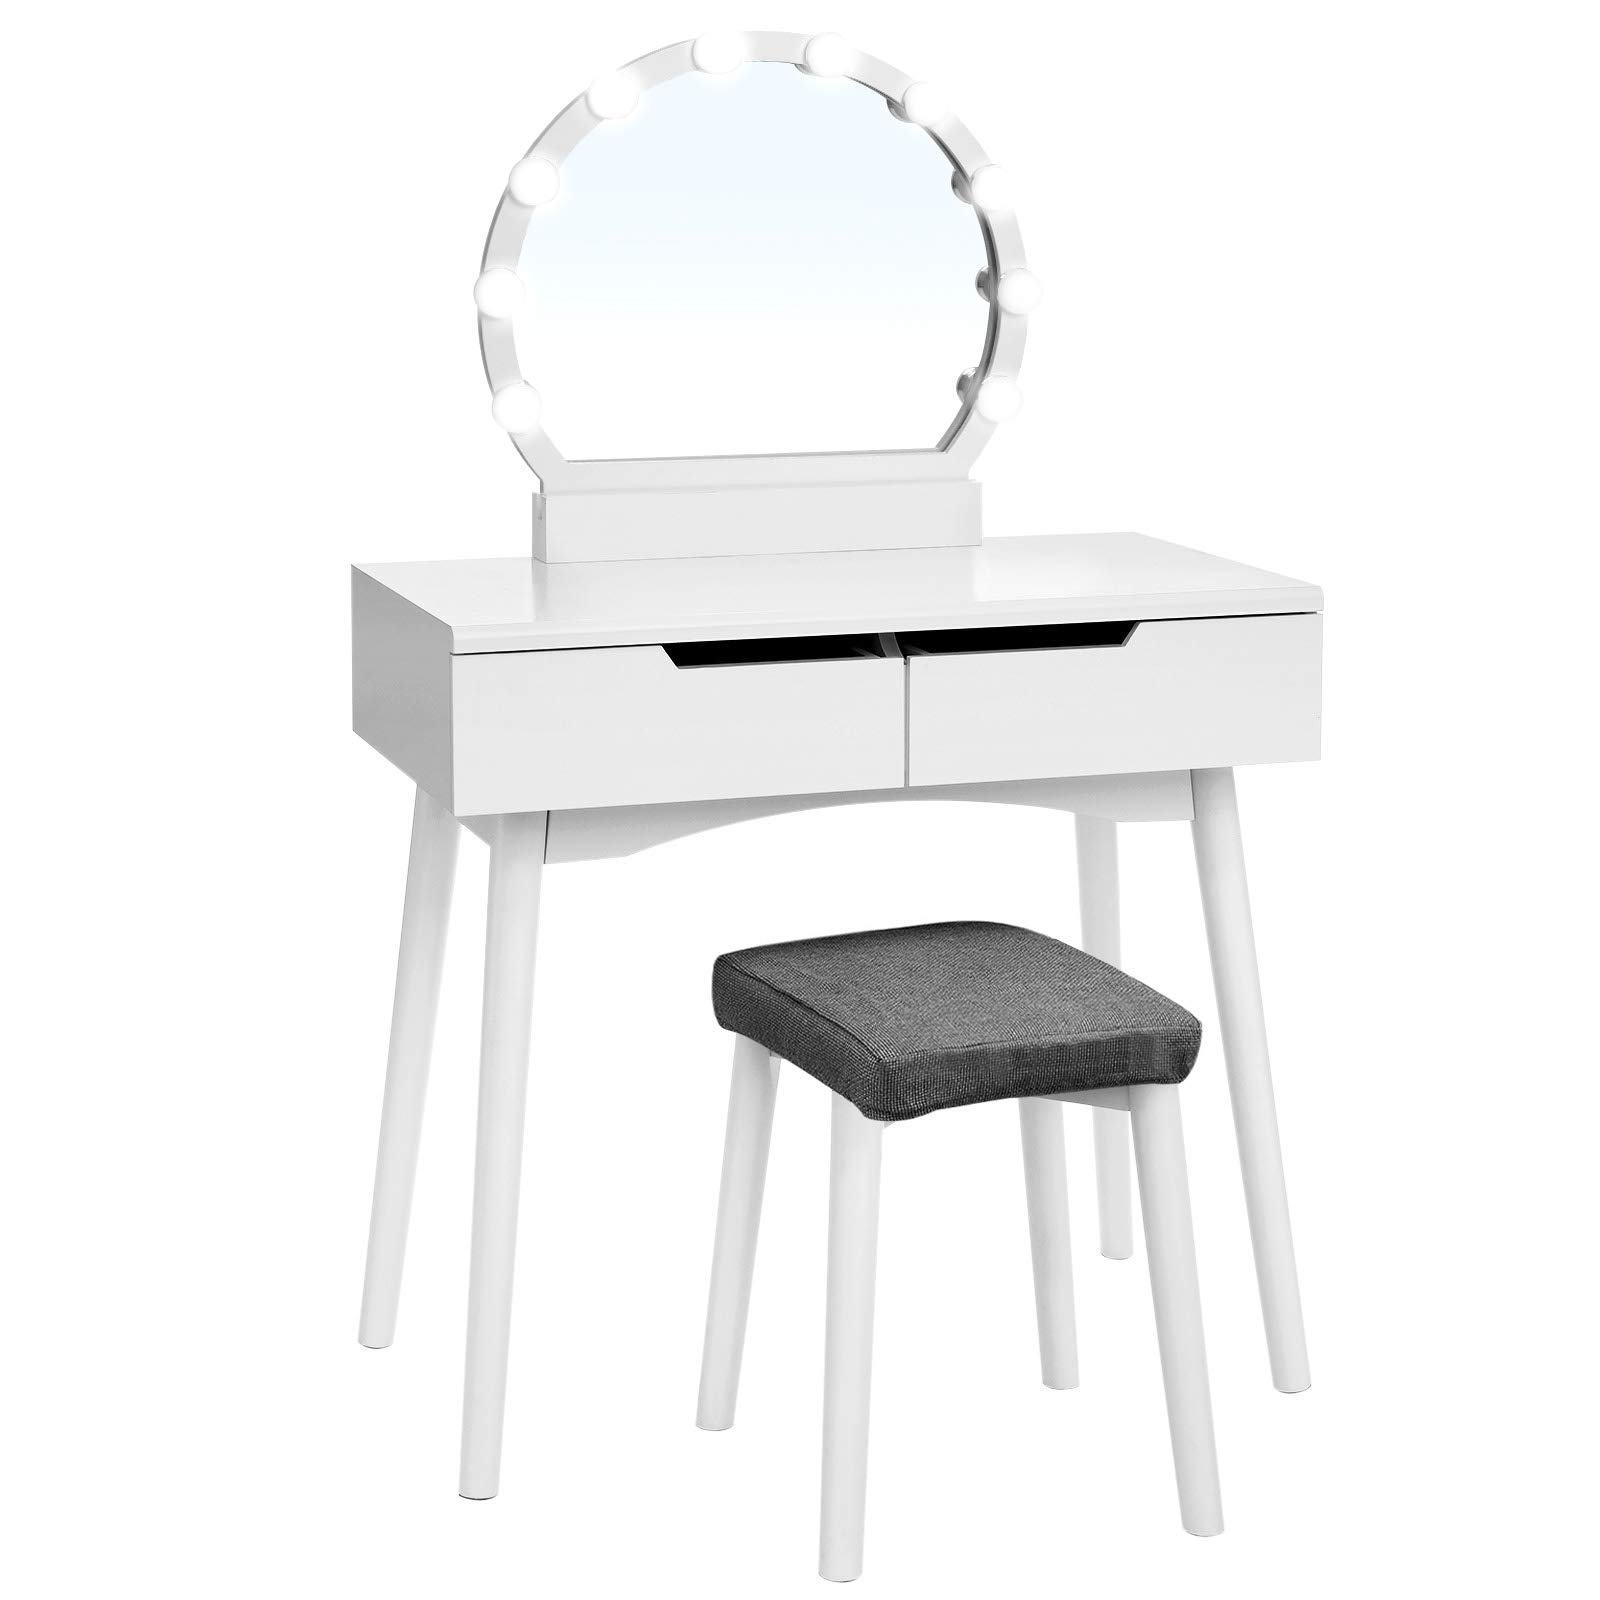 VASAGLE Vanity Table Set with 10 Light Bulbs and Touch Switch, Dressing Makeup Table Desk with Large Round Mirror, 2 Sliding Drawers, 1 Cushioned Stool for bedroom, bathroom, White URDT11WL